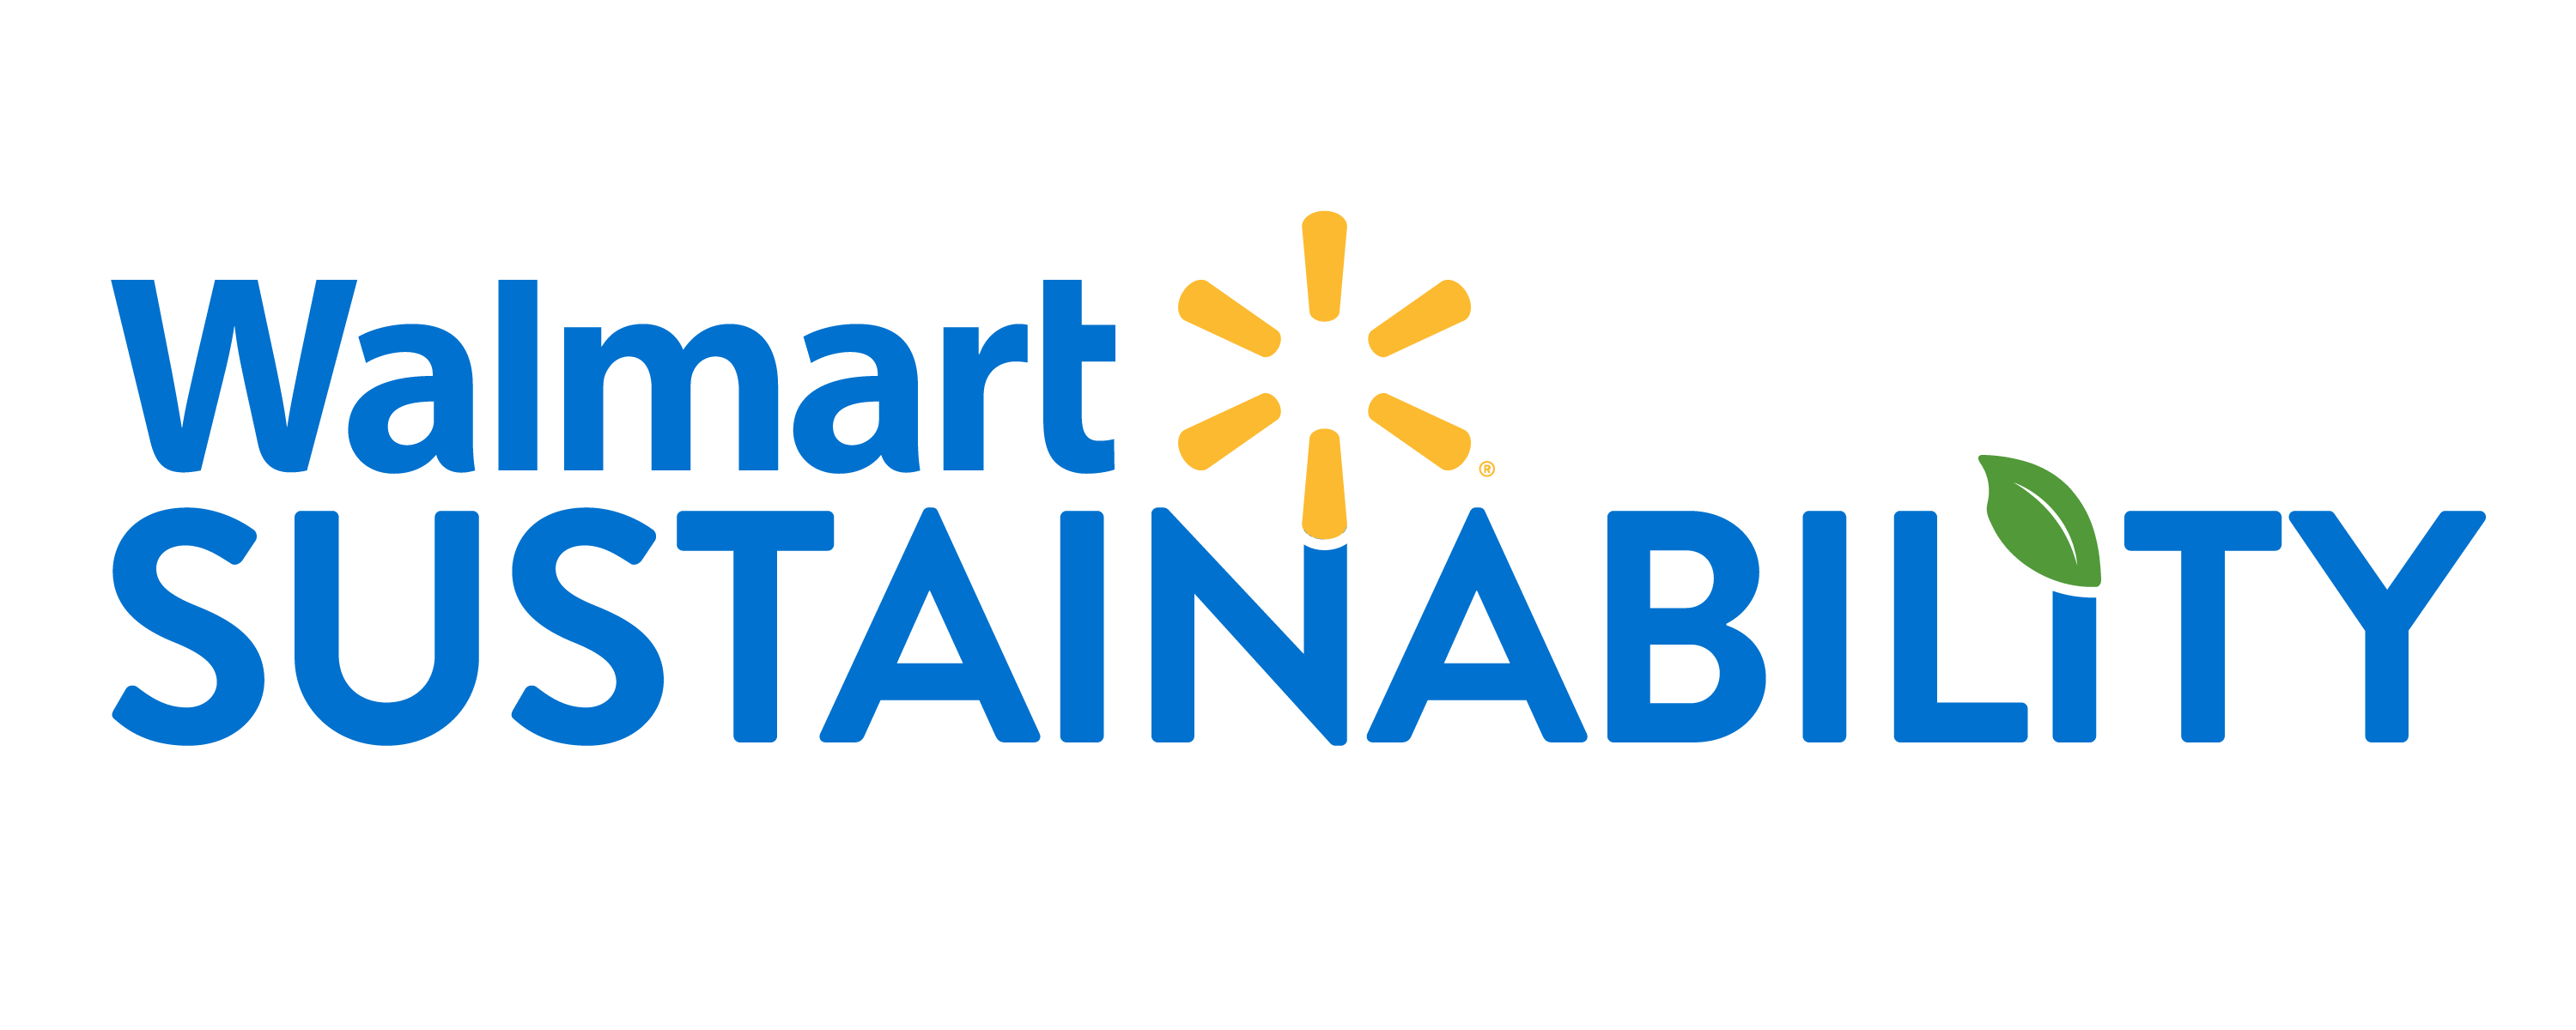 Walmart Sustainability Logo_yellow_v2-01